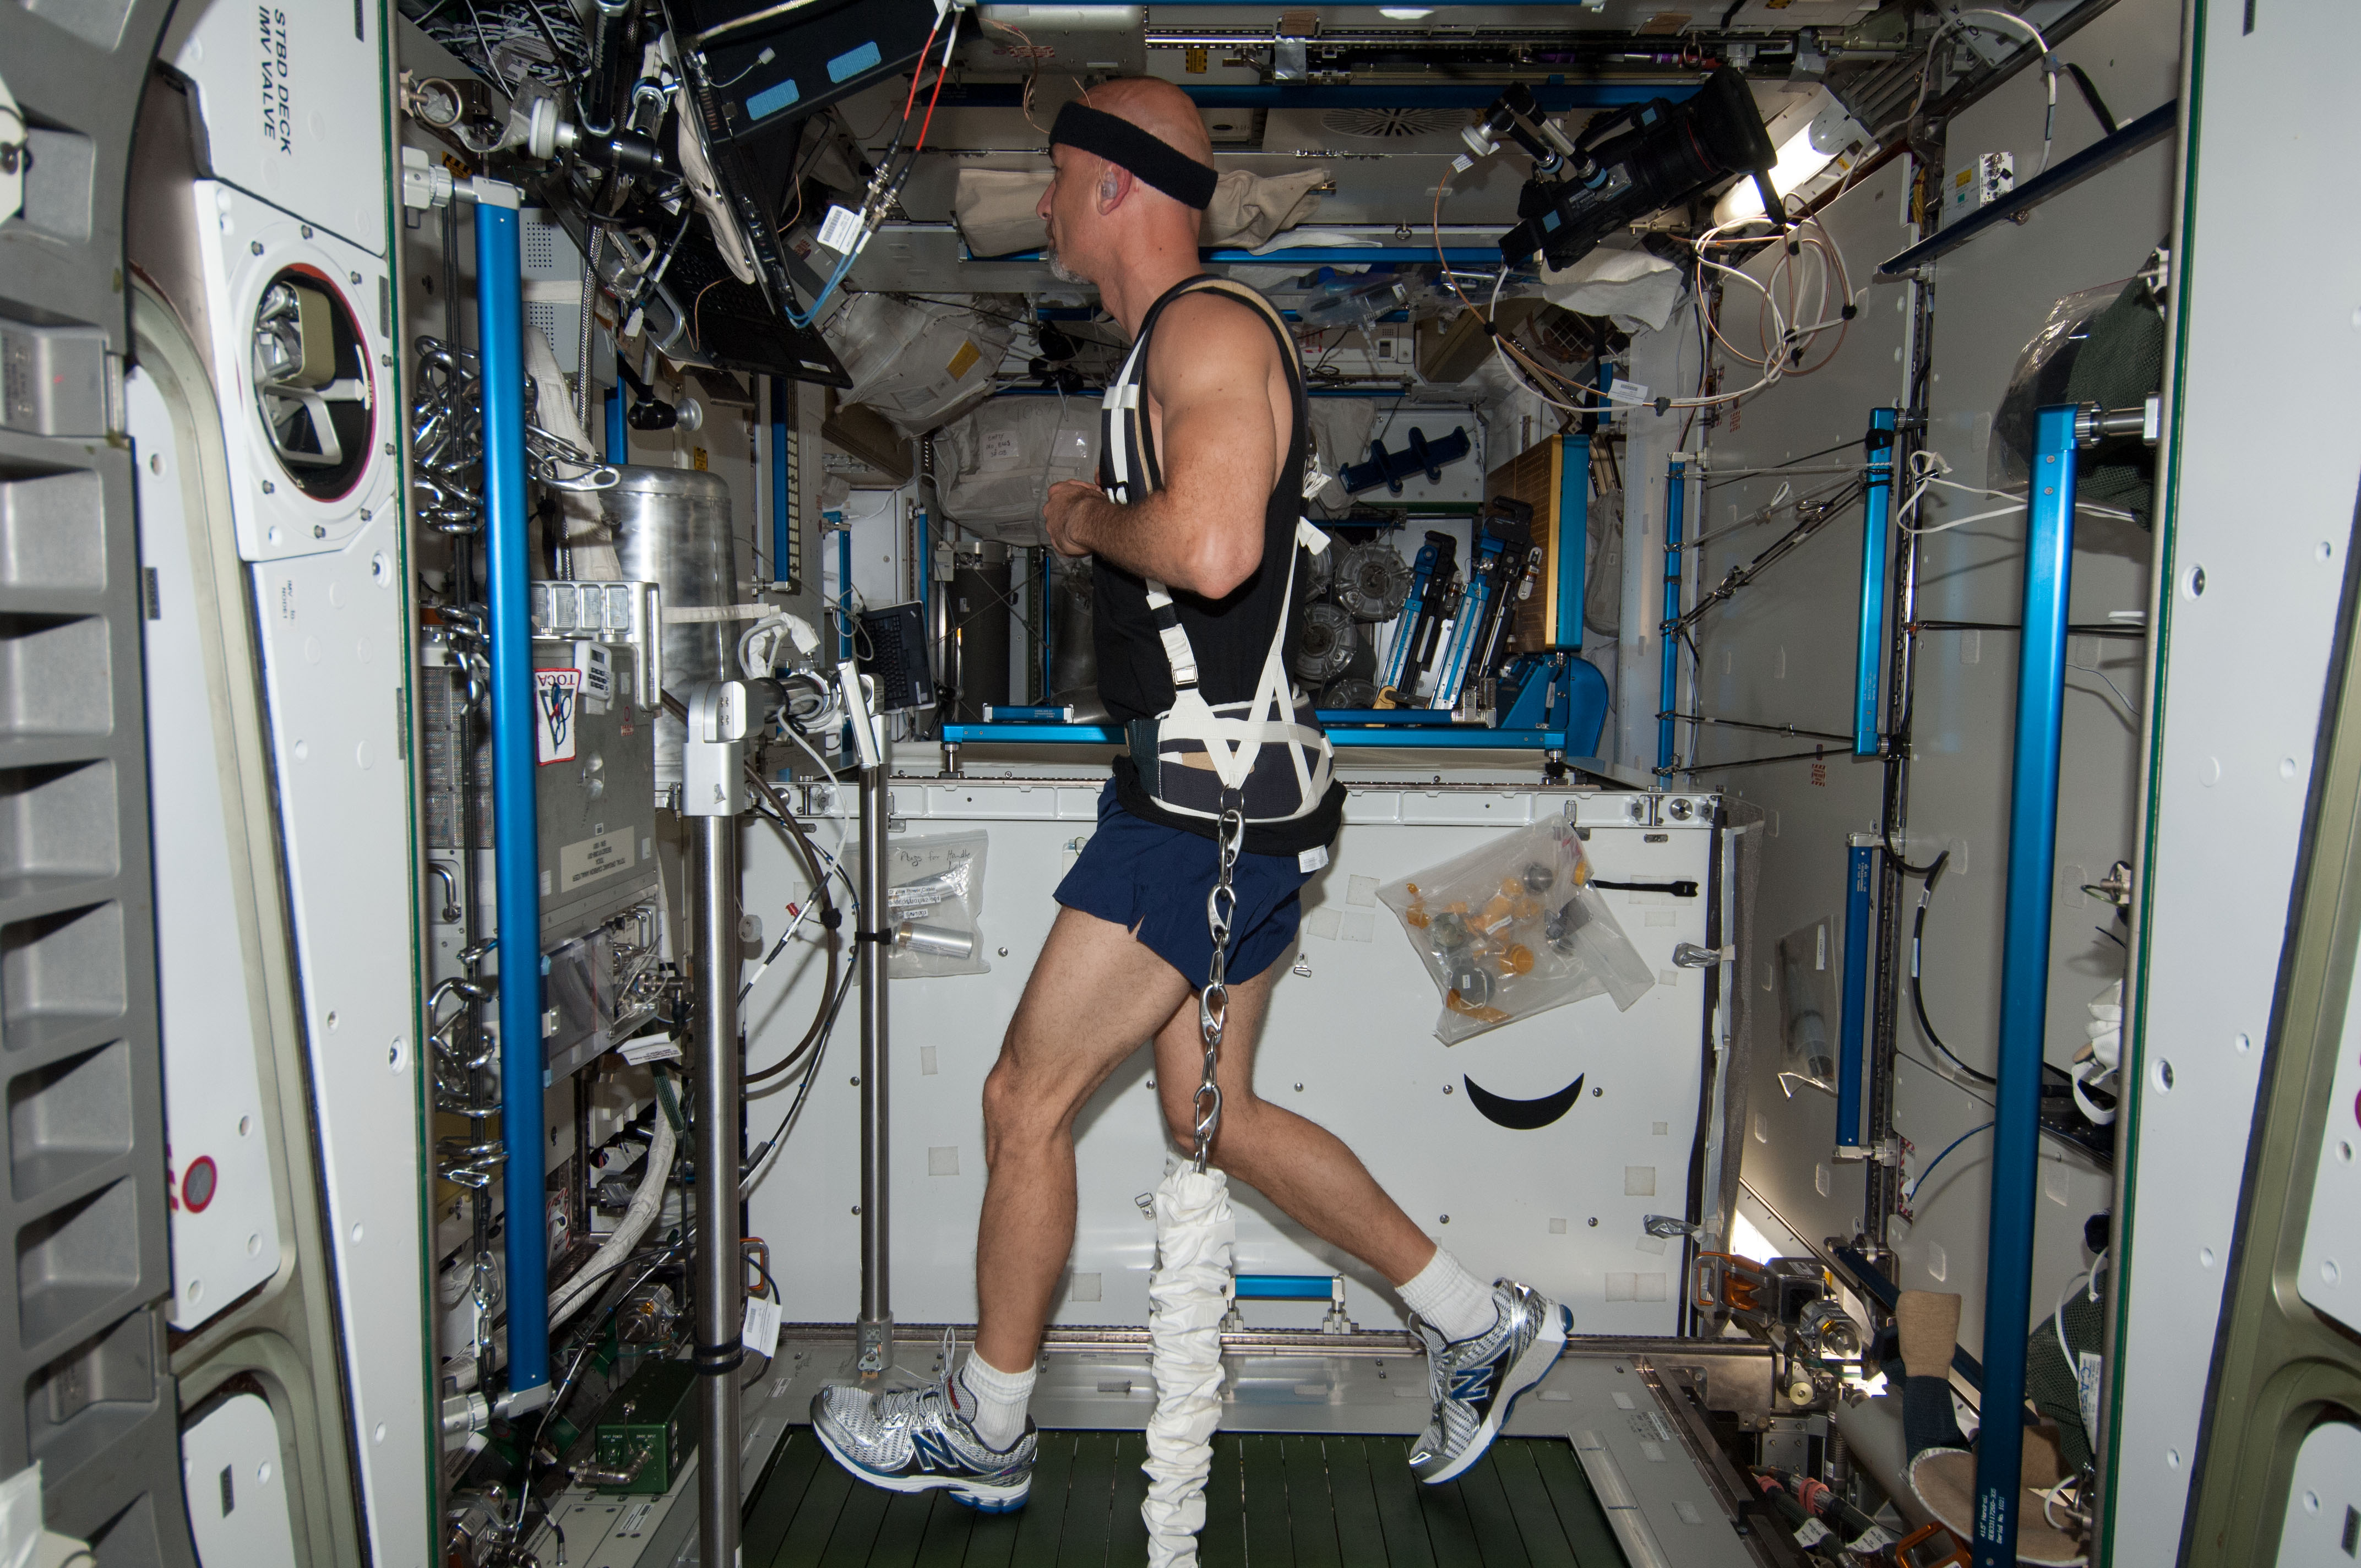 space station gym - photo #6